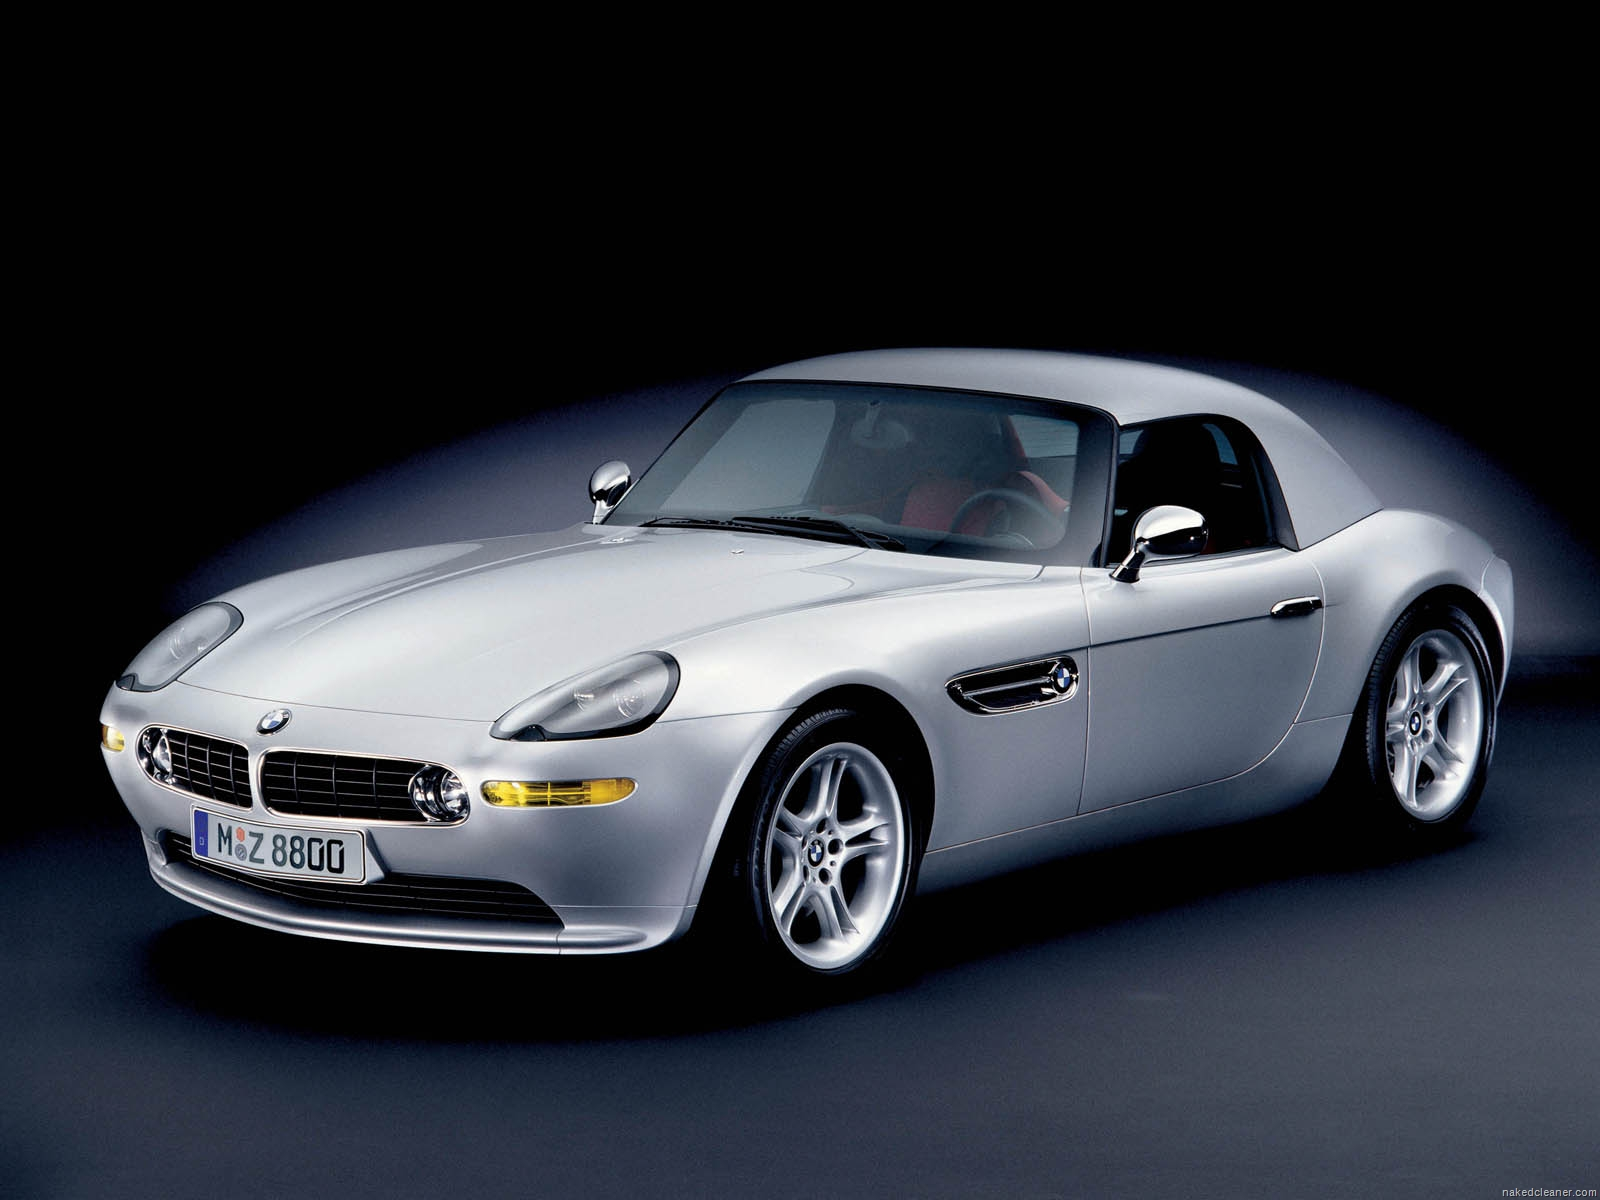 bmw - car gallery - photos of new releases |bmw car photos